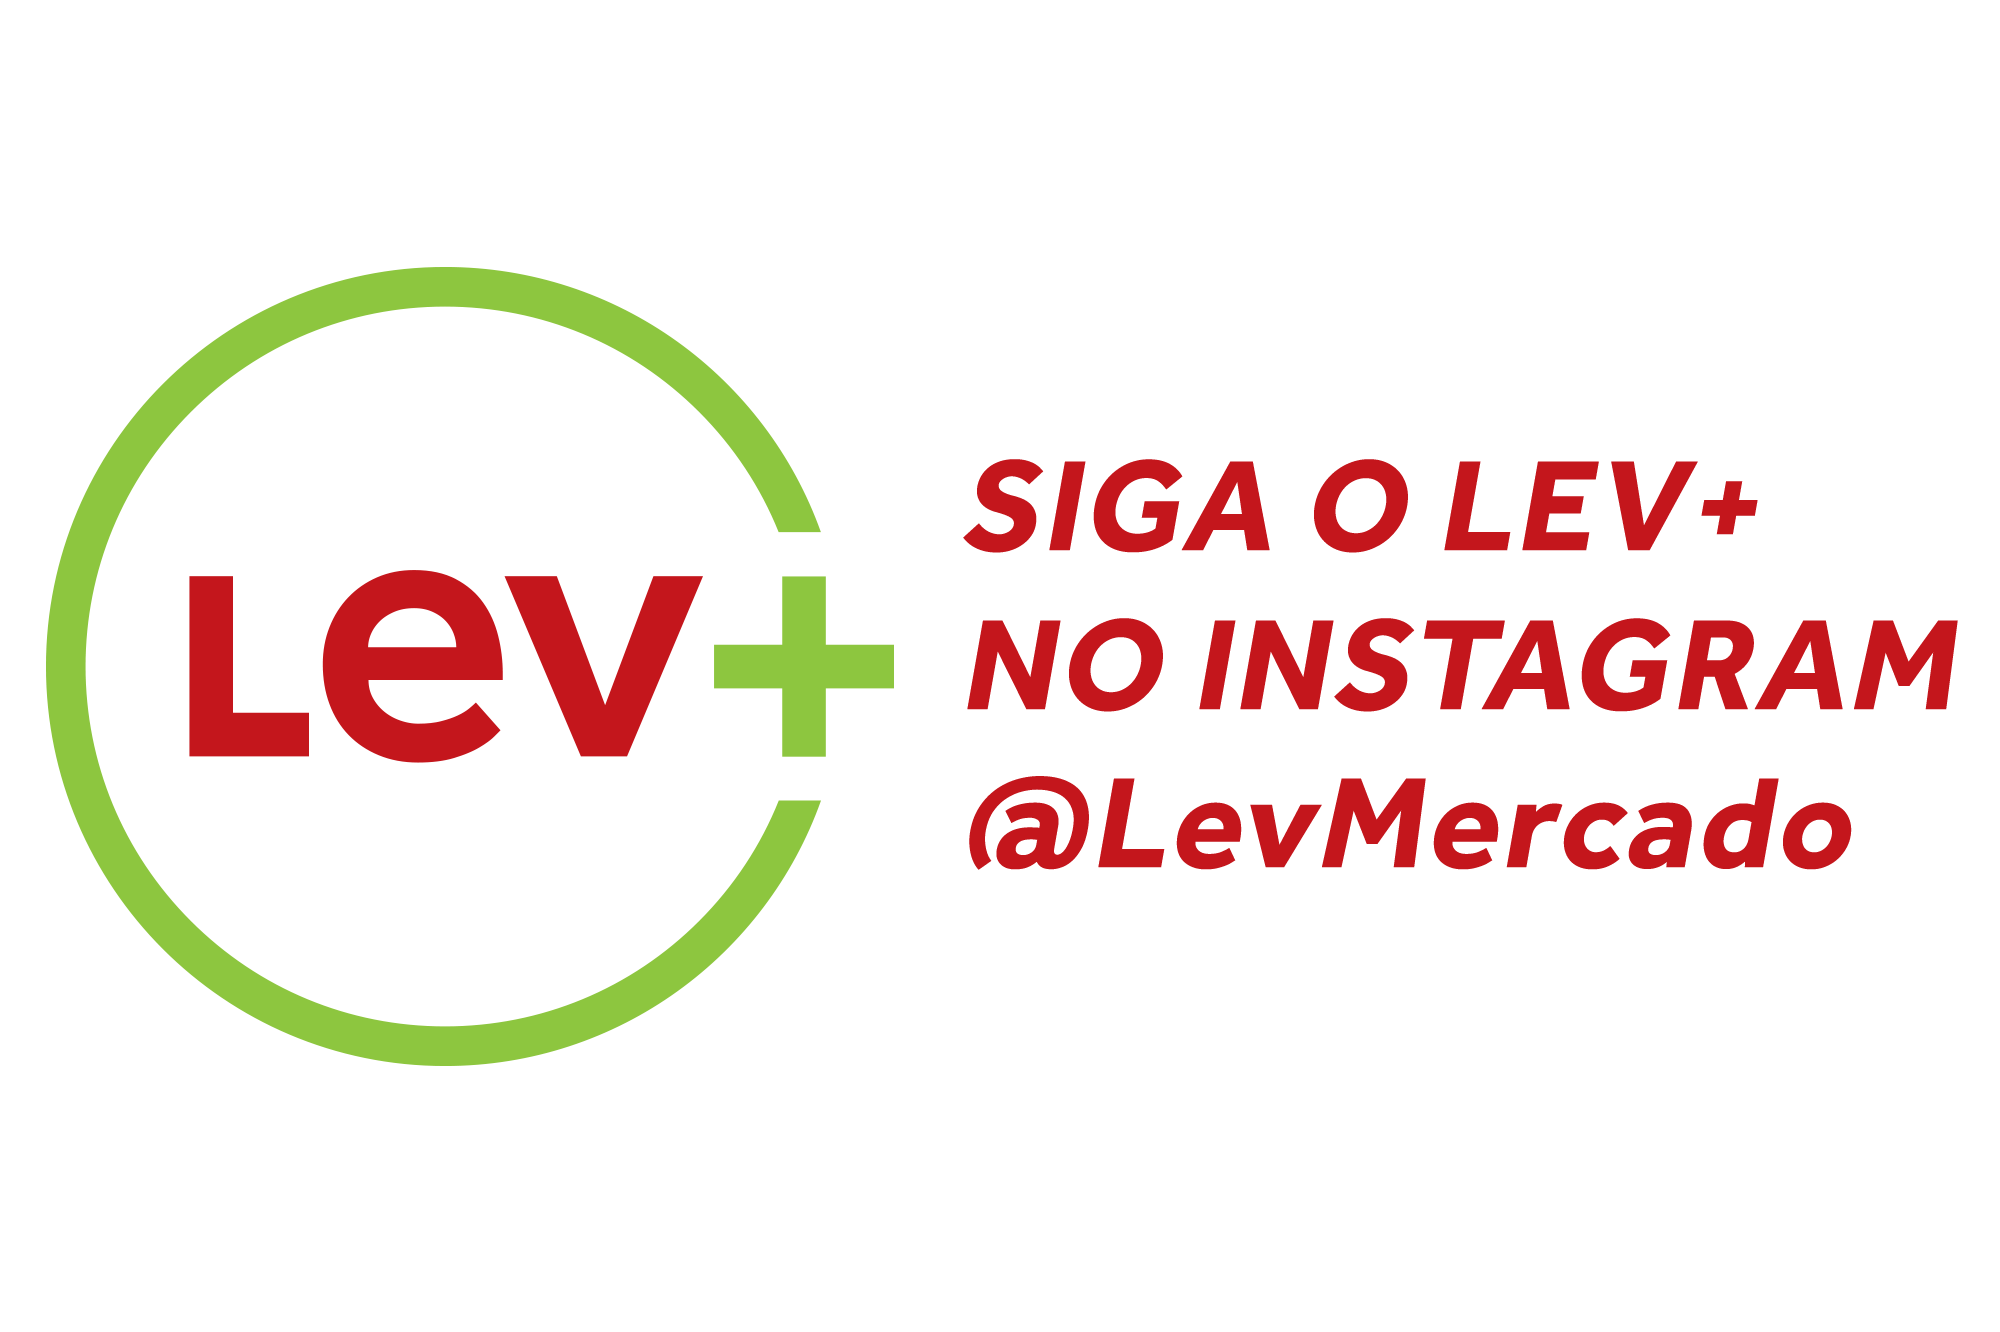 Siga o Lev+ Mercado no Instagram